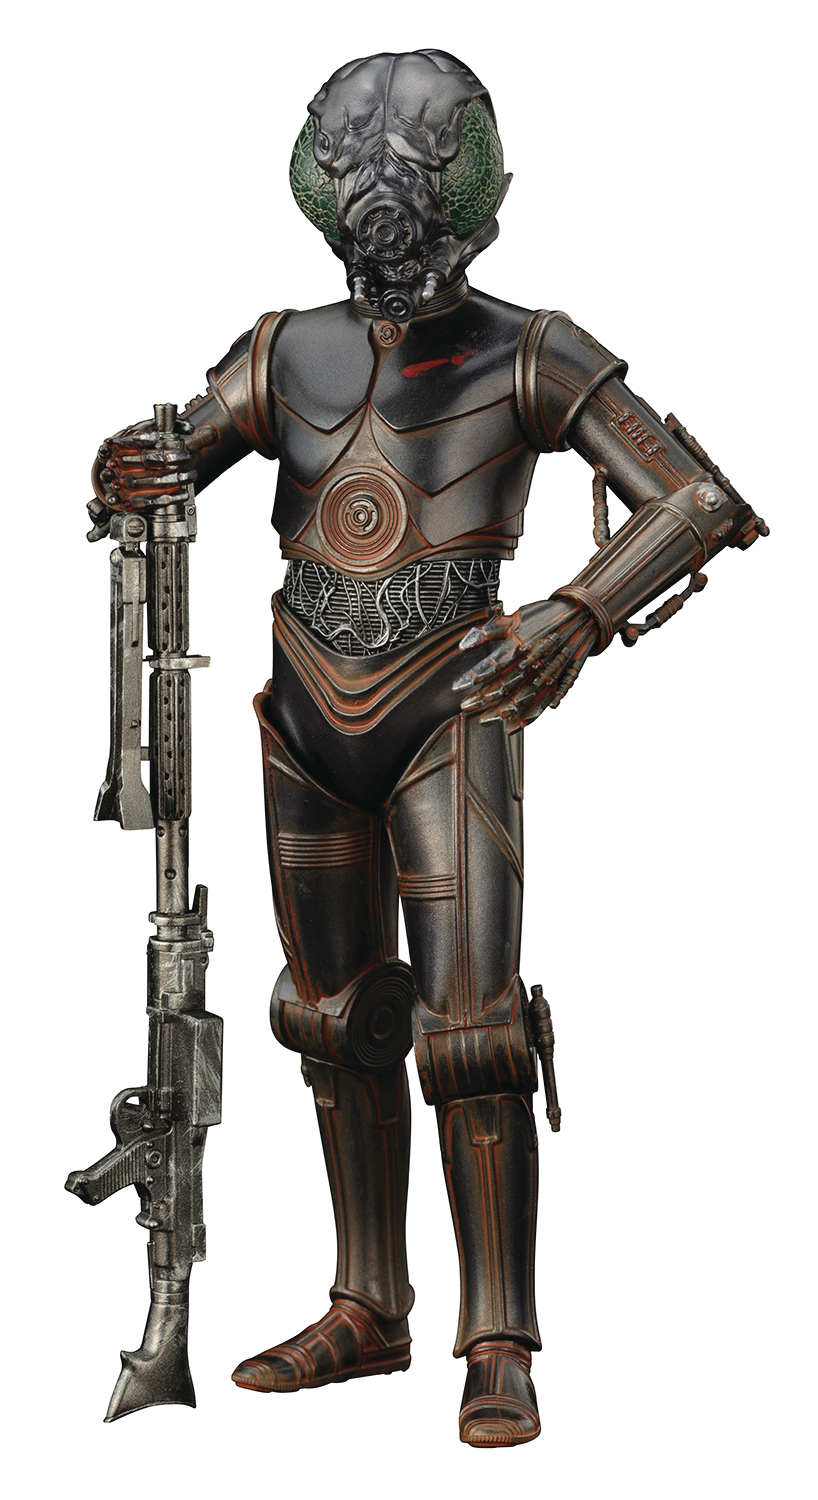 STAR WARS BOUNTY HUNTER 4-LOM ARTFX+ STATUE